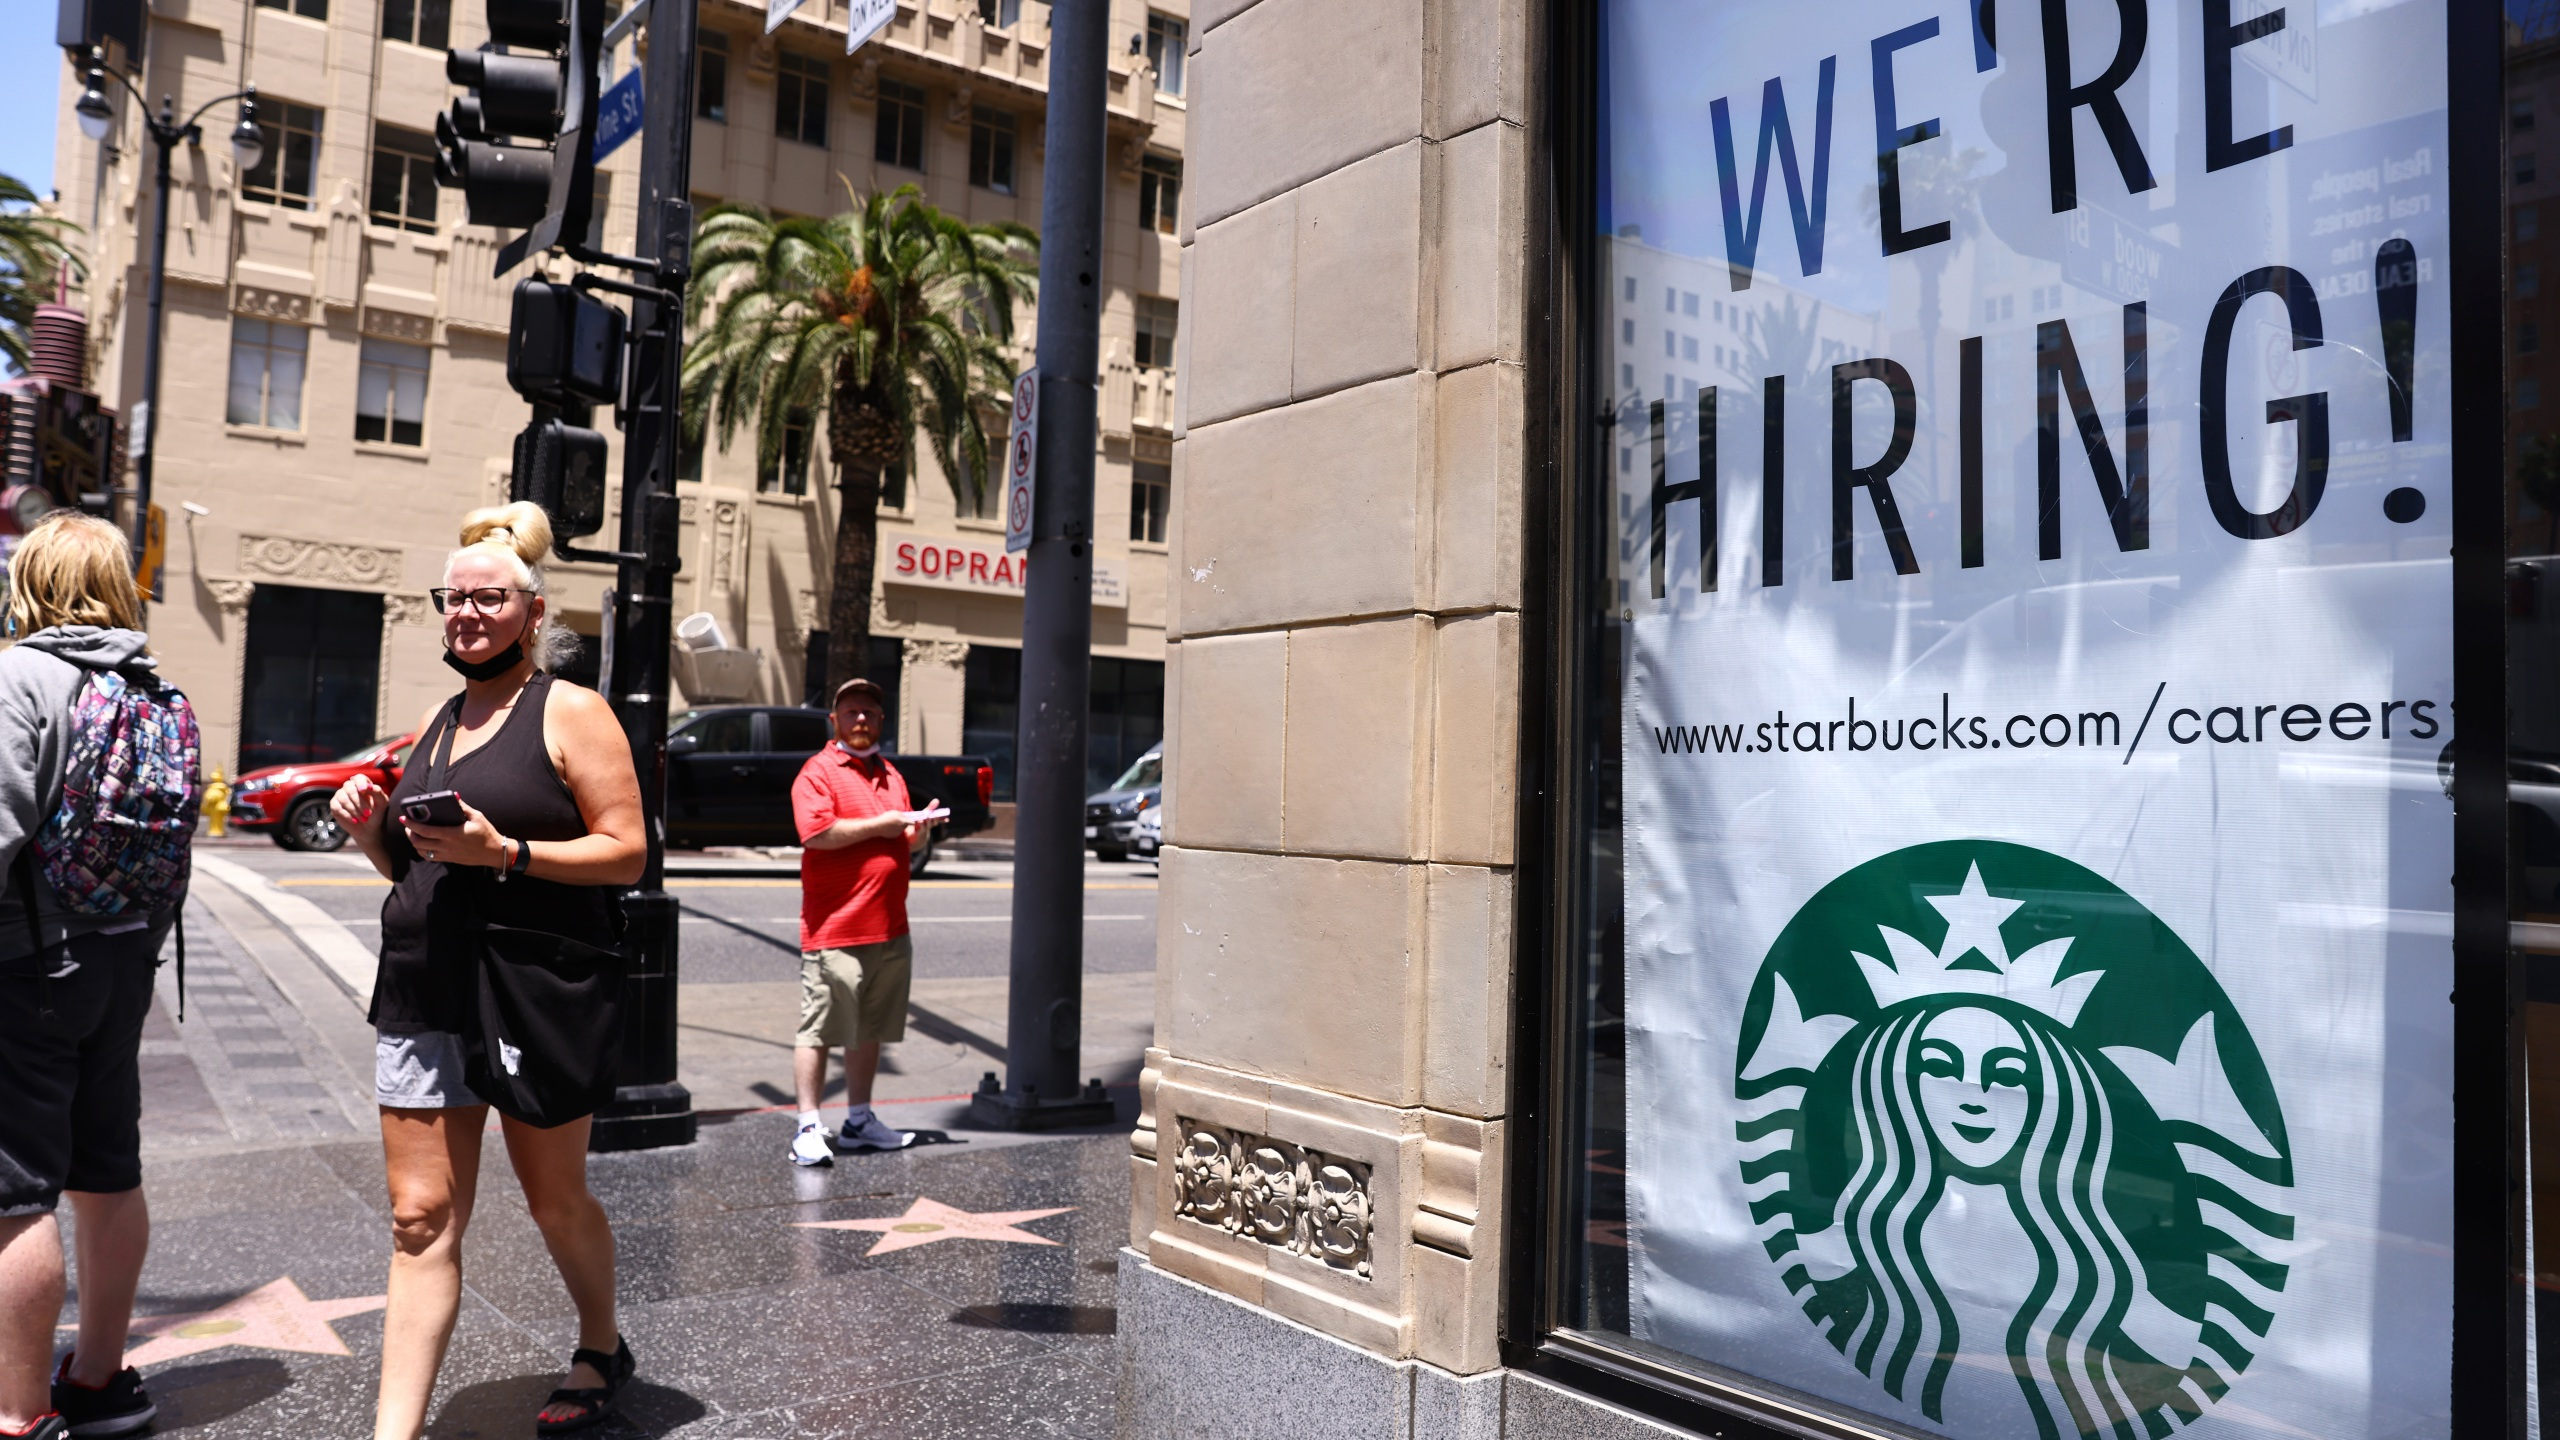 A 'We're Hiring!' sign is displayed at a Starbucks on Hollywood Boulevard on June 23, 2021 in Los Angeles. (Mario Tama/Getty Images)